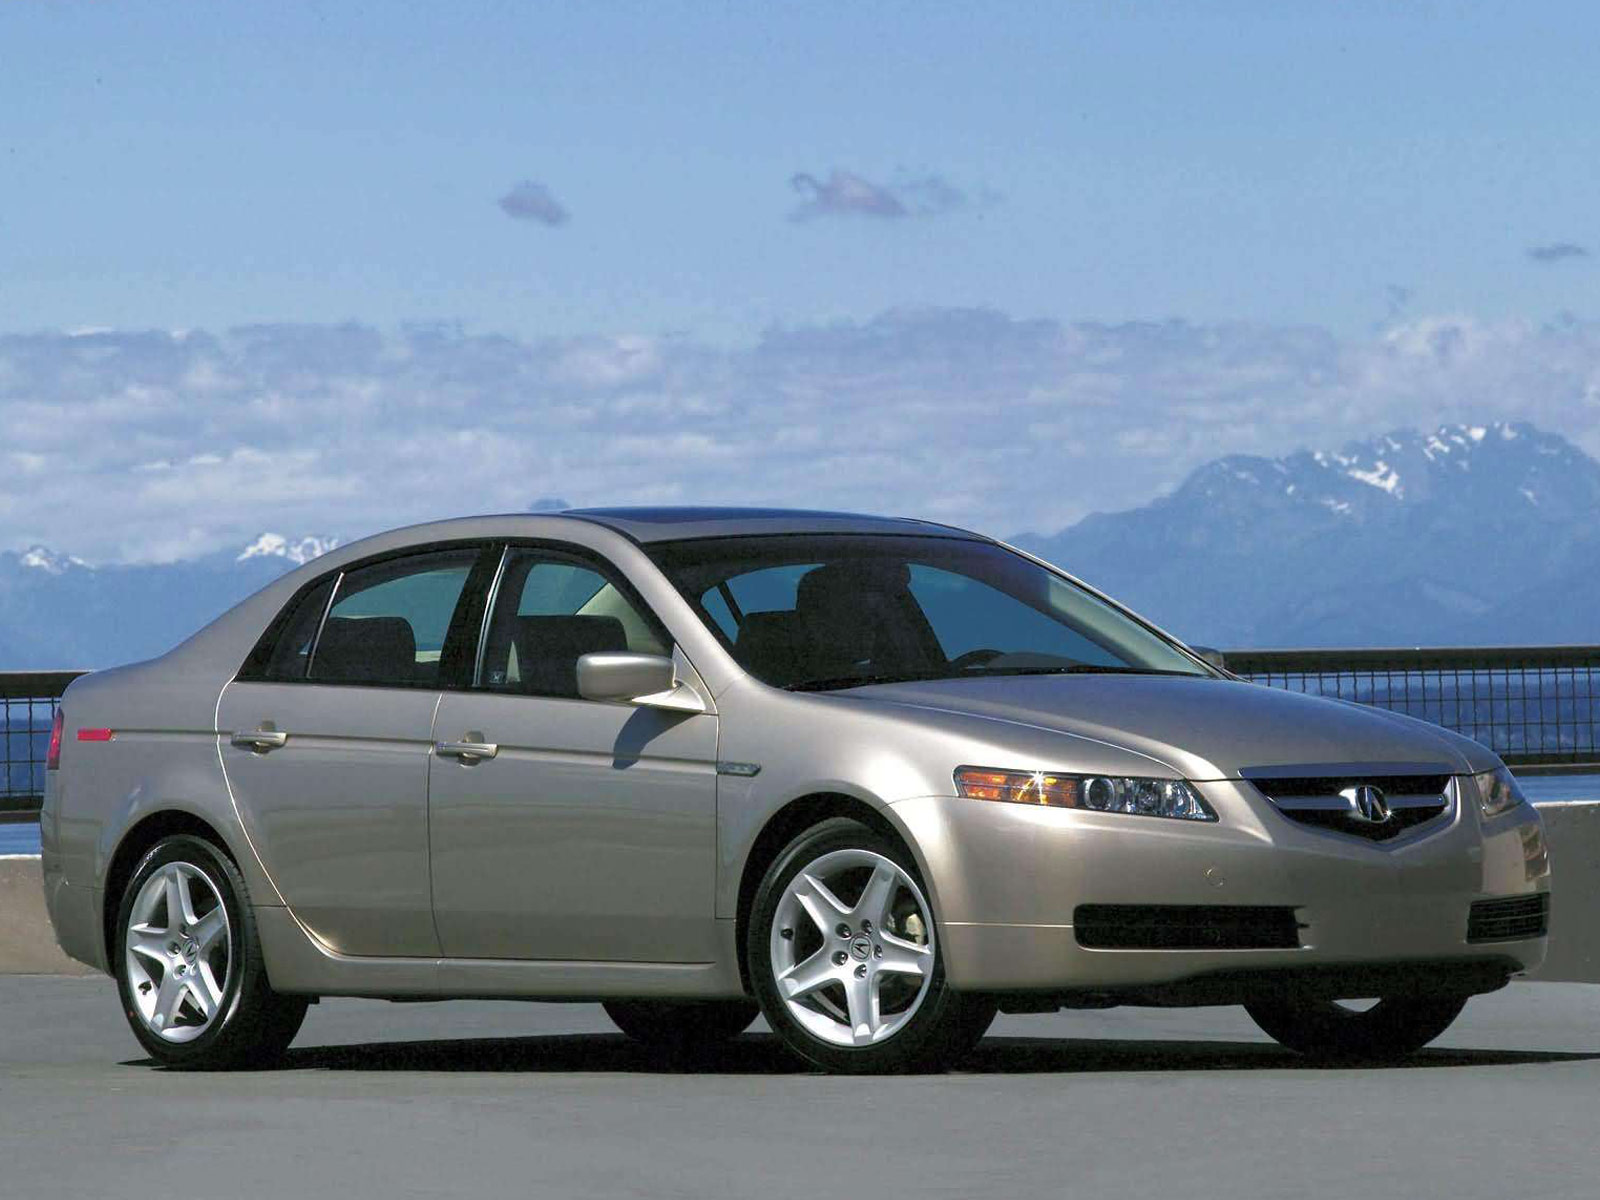 2004 Acura 3 2 Tl Car Desktop Wallpaper Auto Trends Magazine HD Wallpapers Download free images and photos [musssic.tk]